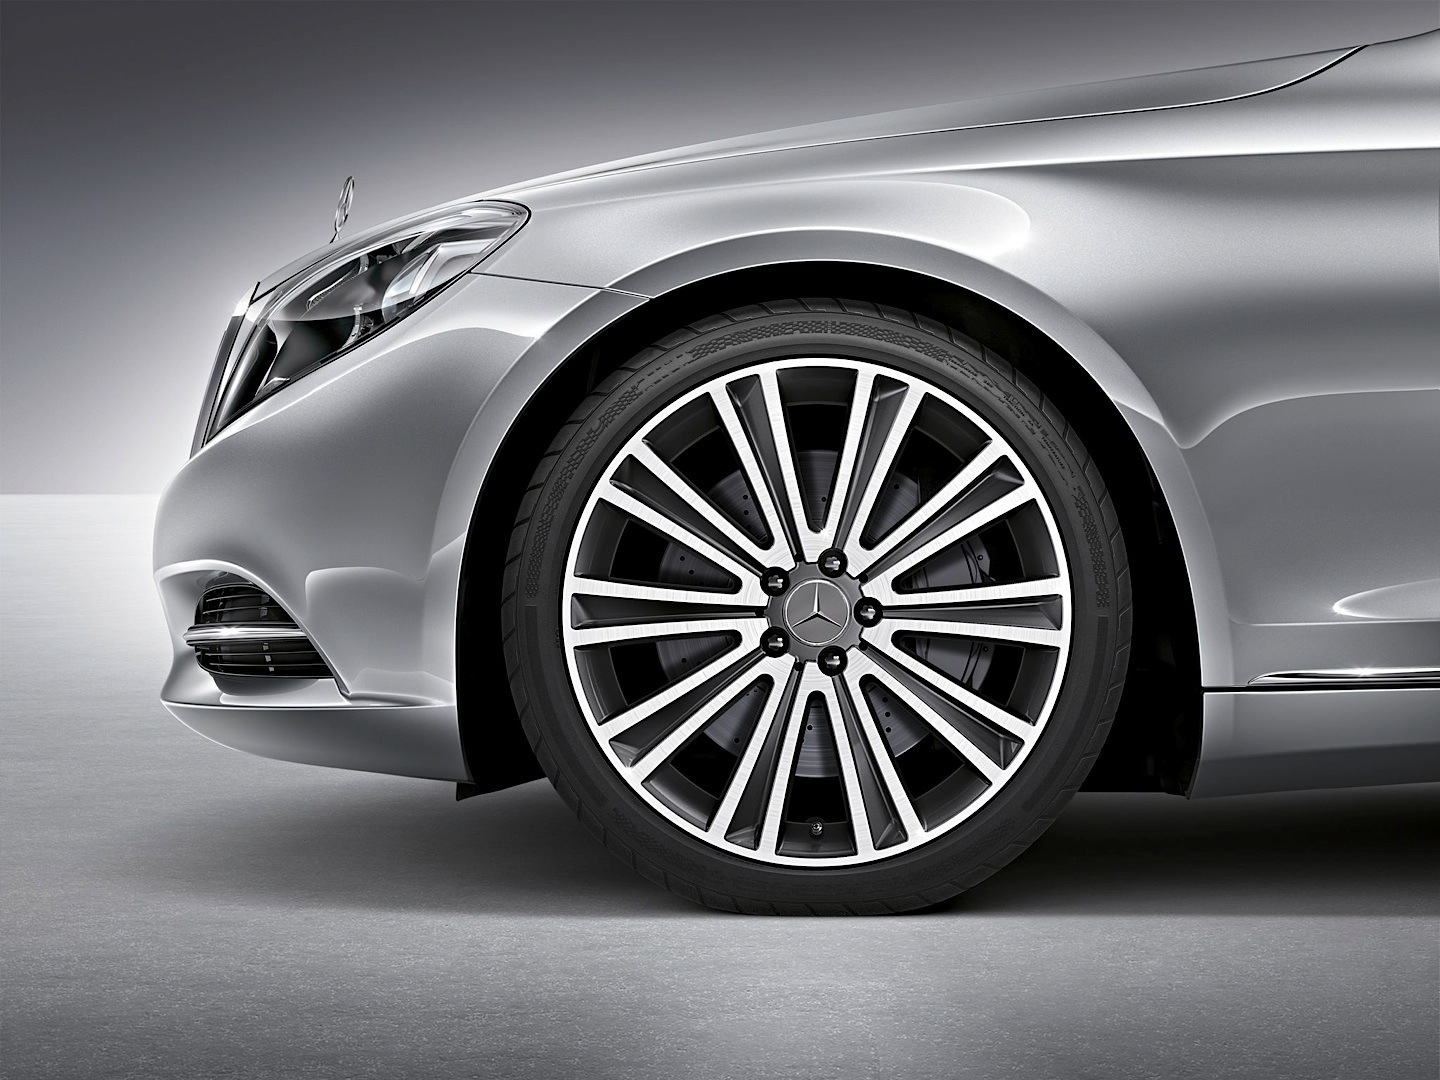 W222 s class gets two new 19 and 20 inch wheel designs for Mercedes benz wheel